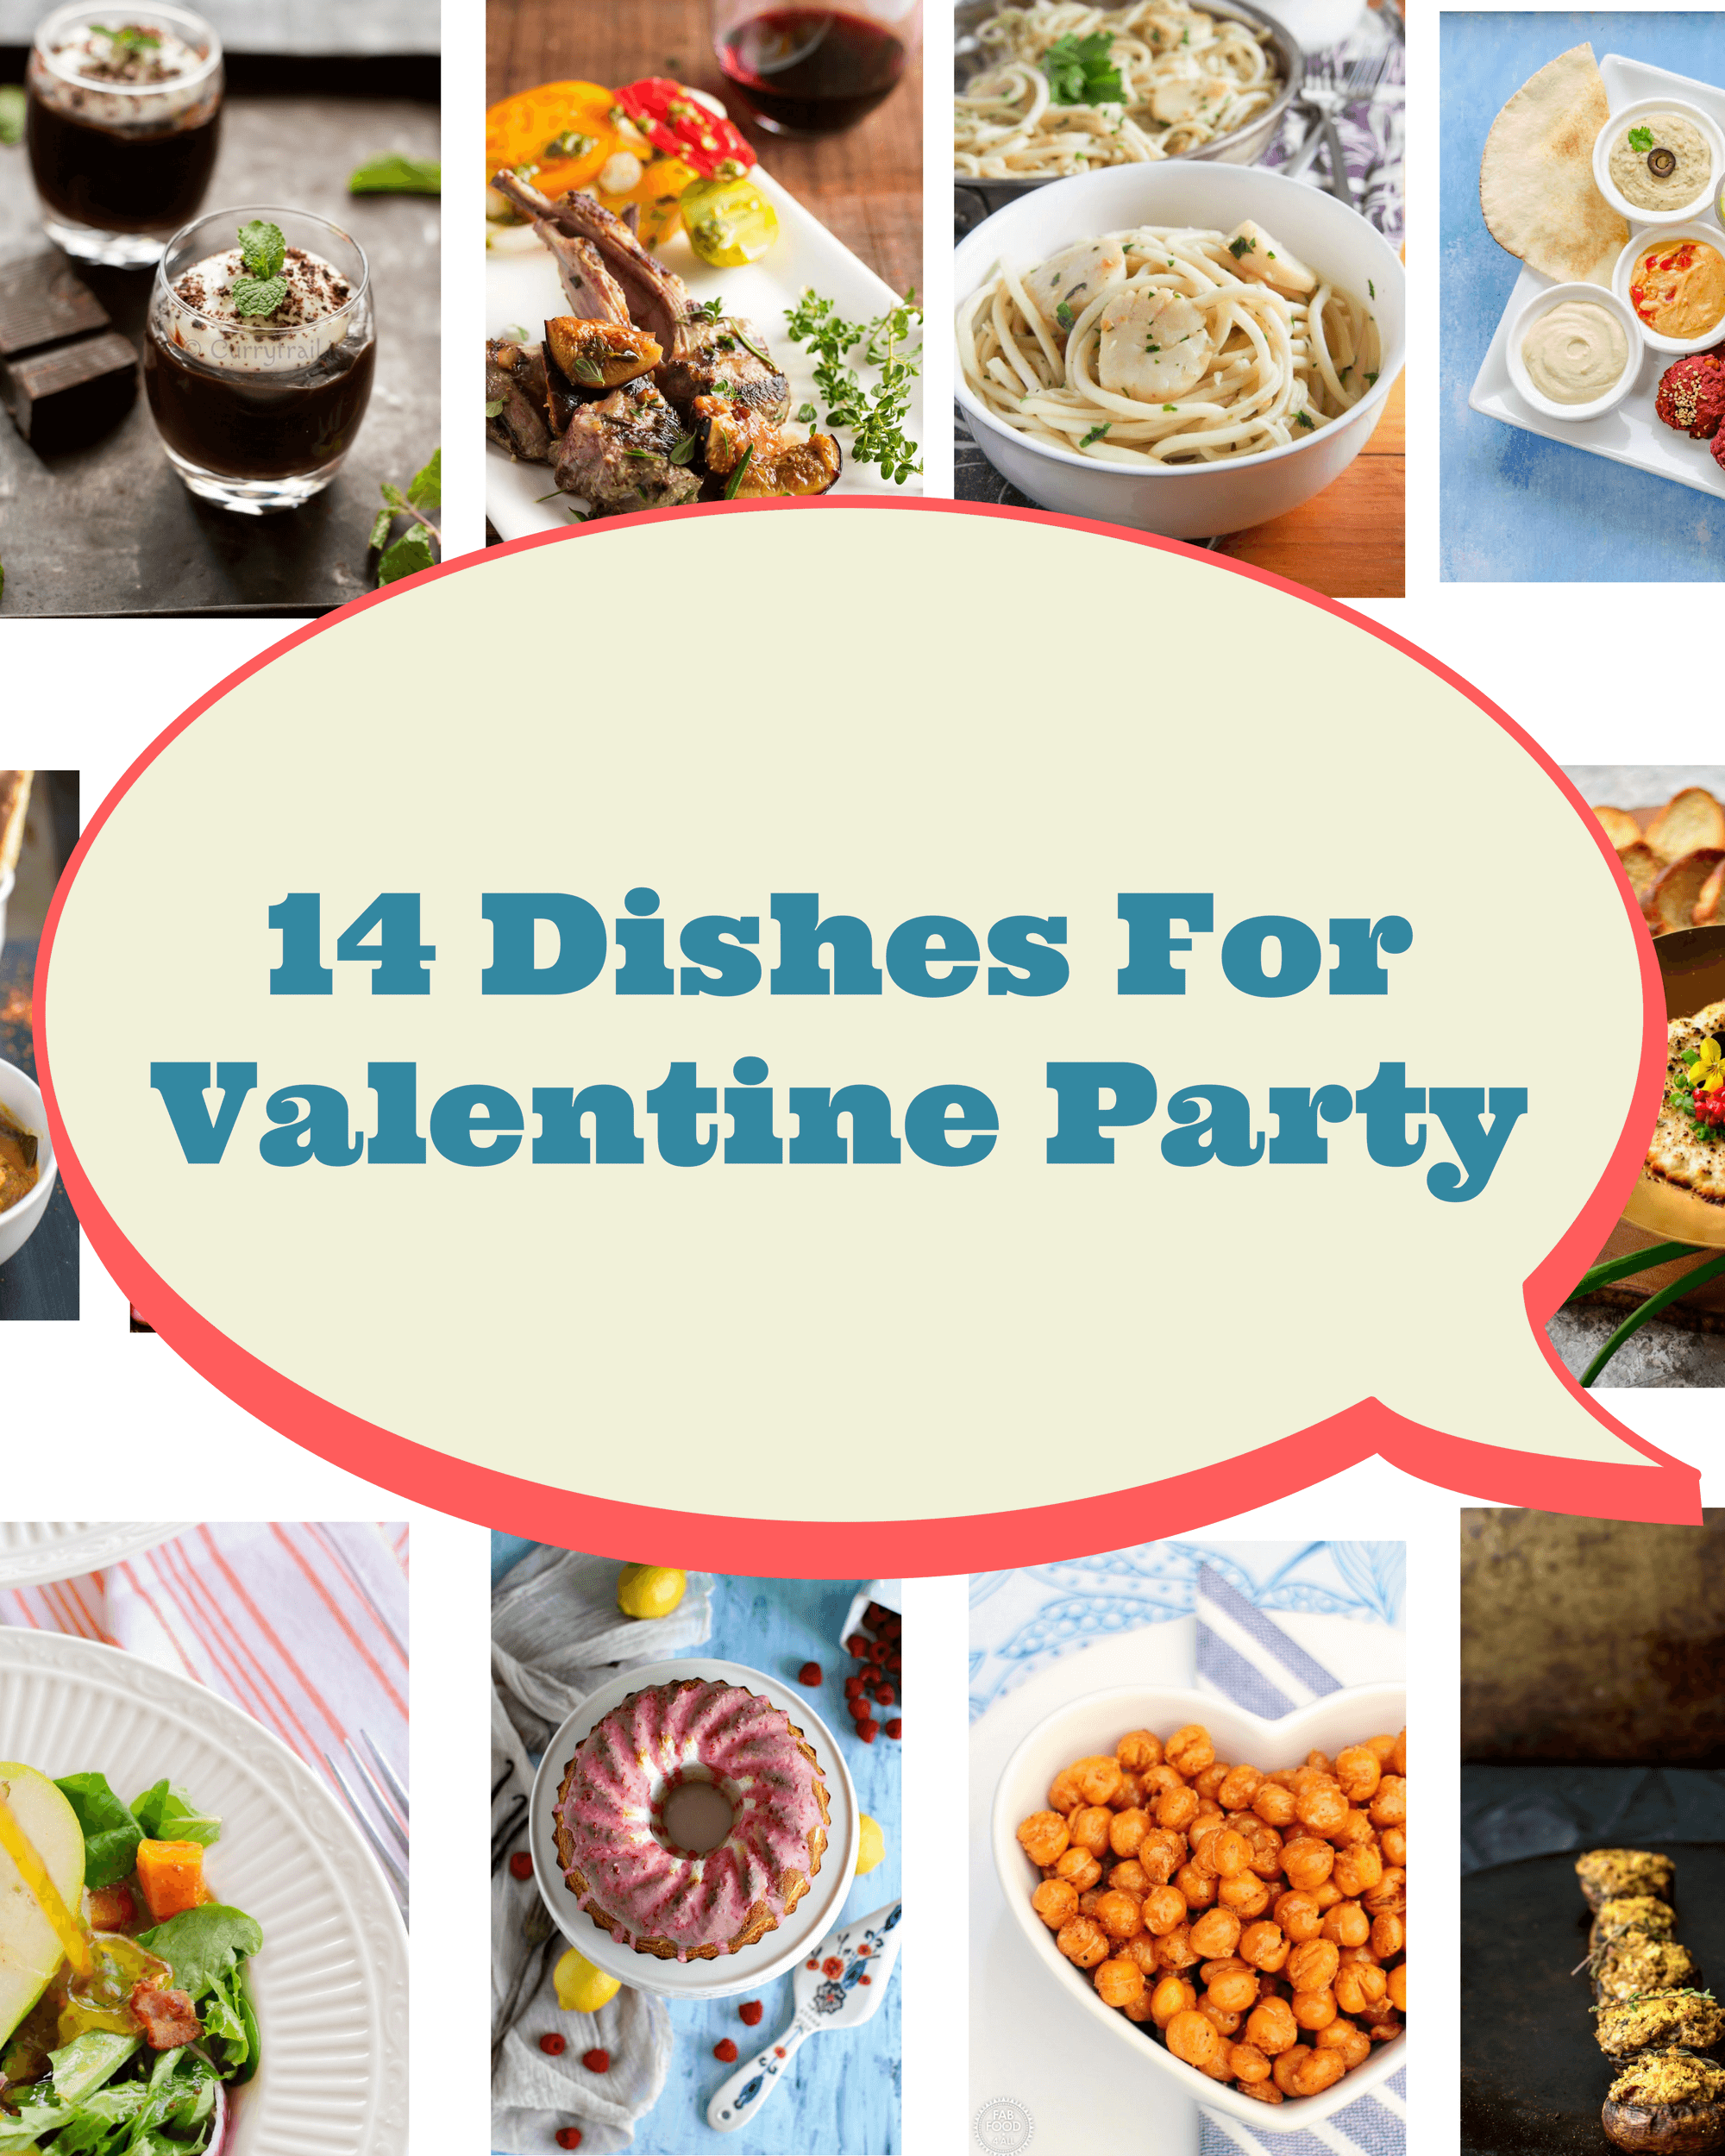 14 Dishes For Valentine Party|poojascookery.com